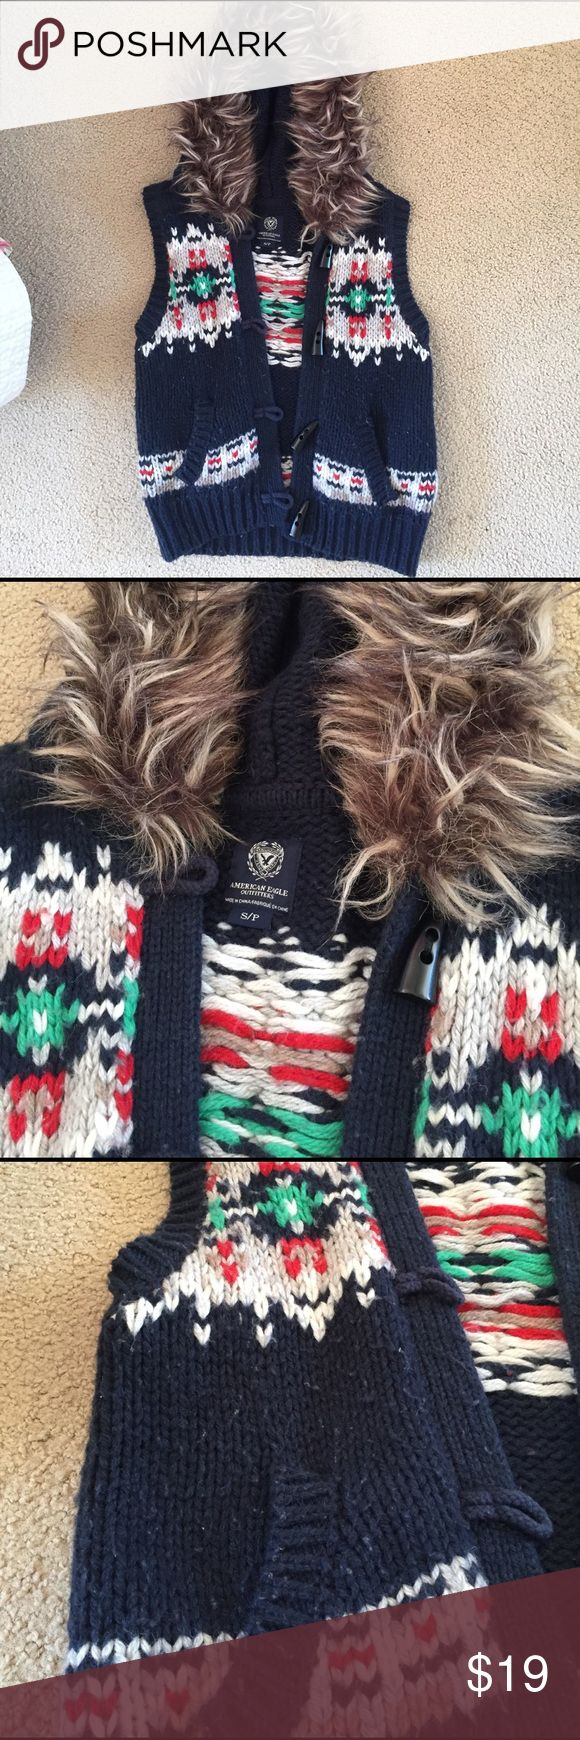 American Eagle Tribal Print Sweater Vest Tribal print sweater vest with faux fur hood lining! Pockets and super cute buttons! American Eagle Outfitters Jackets & Coats Vests